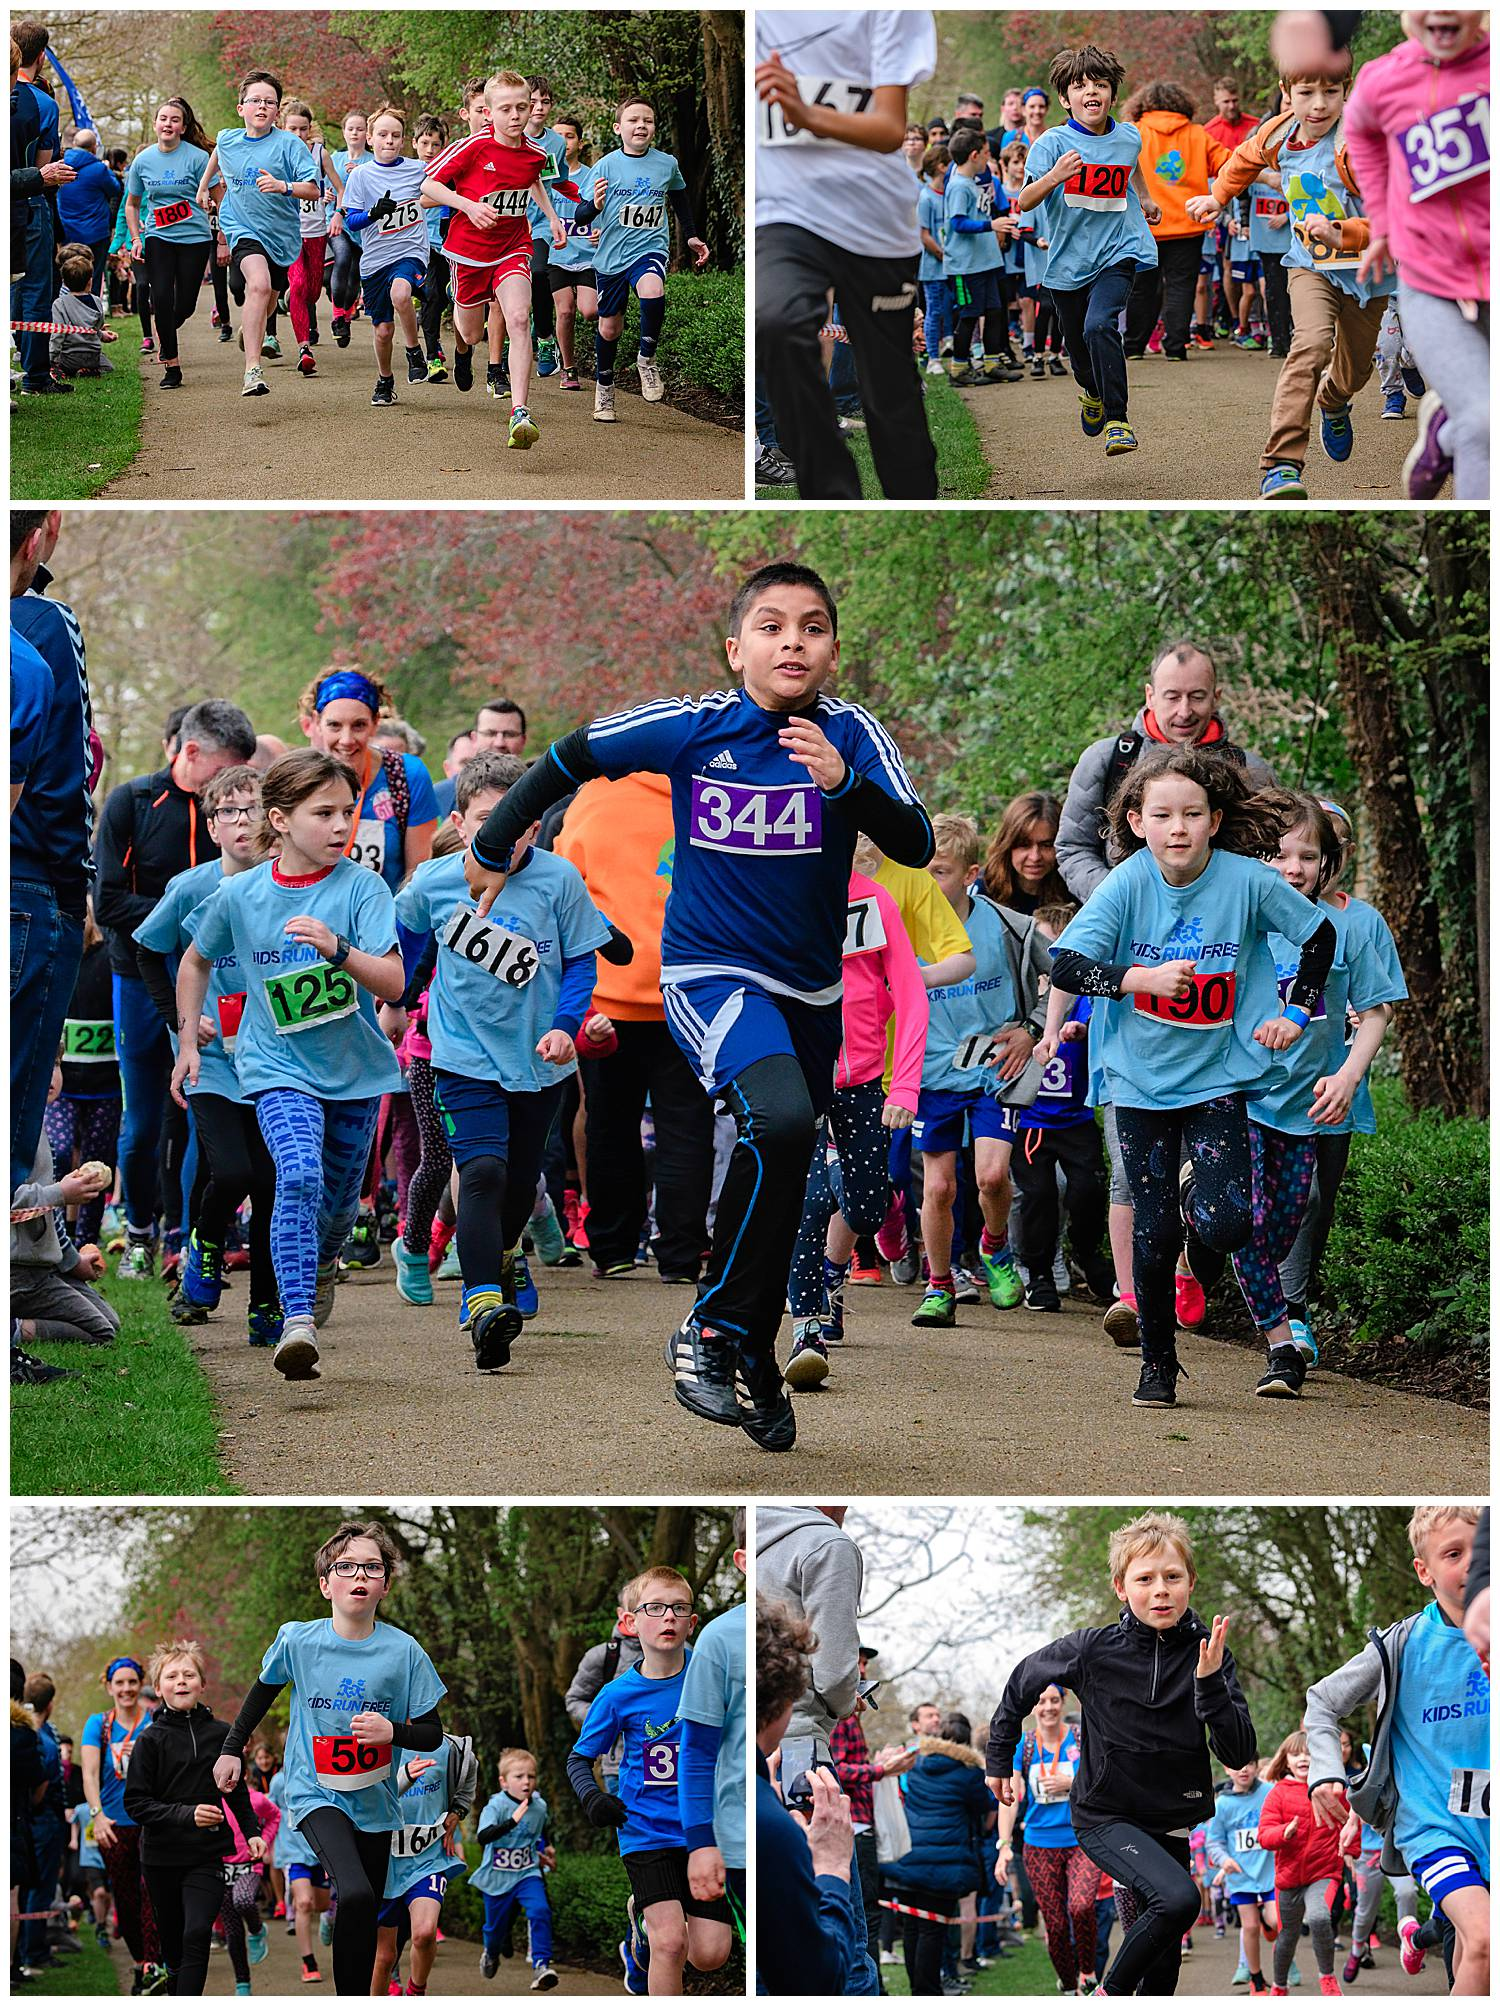 Montage of images of teenagers running in a children's fun run